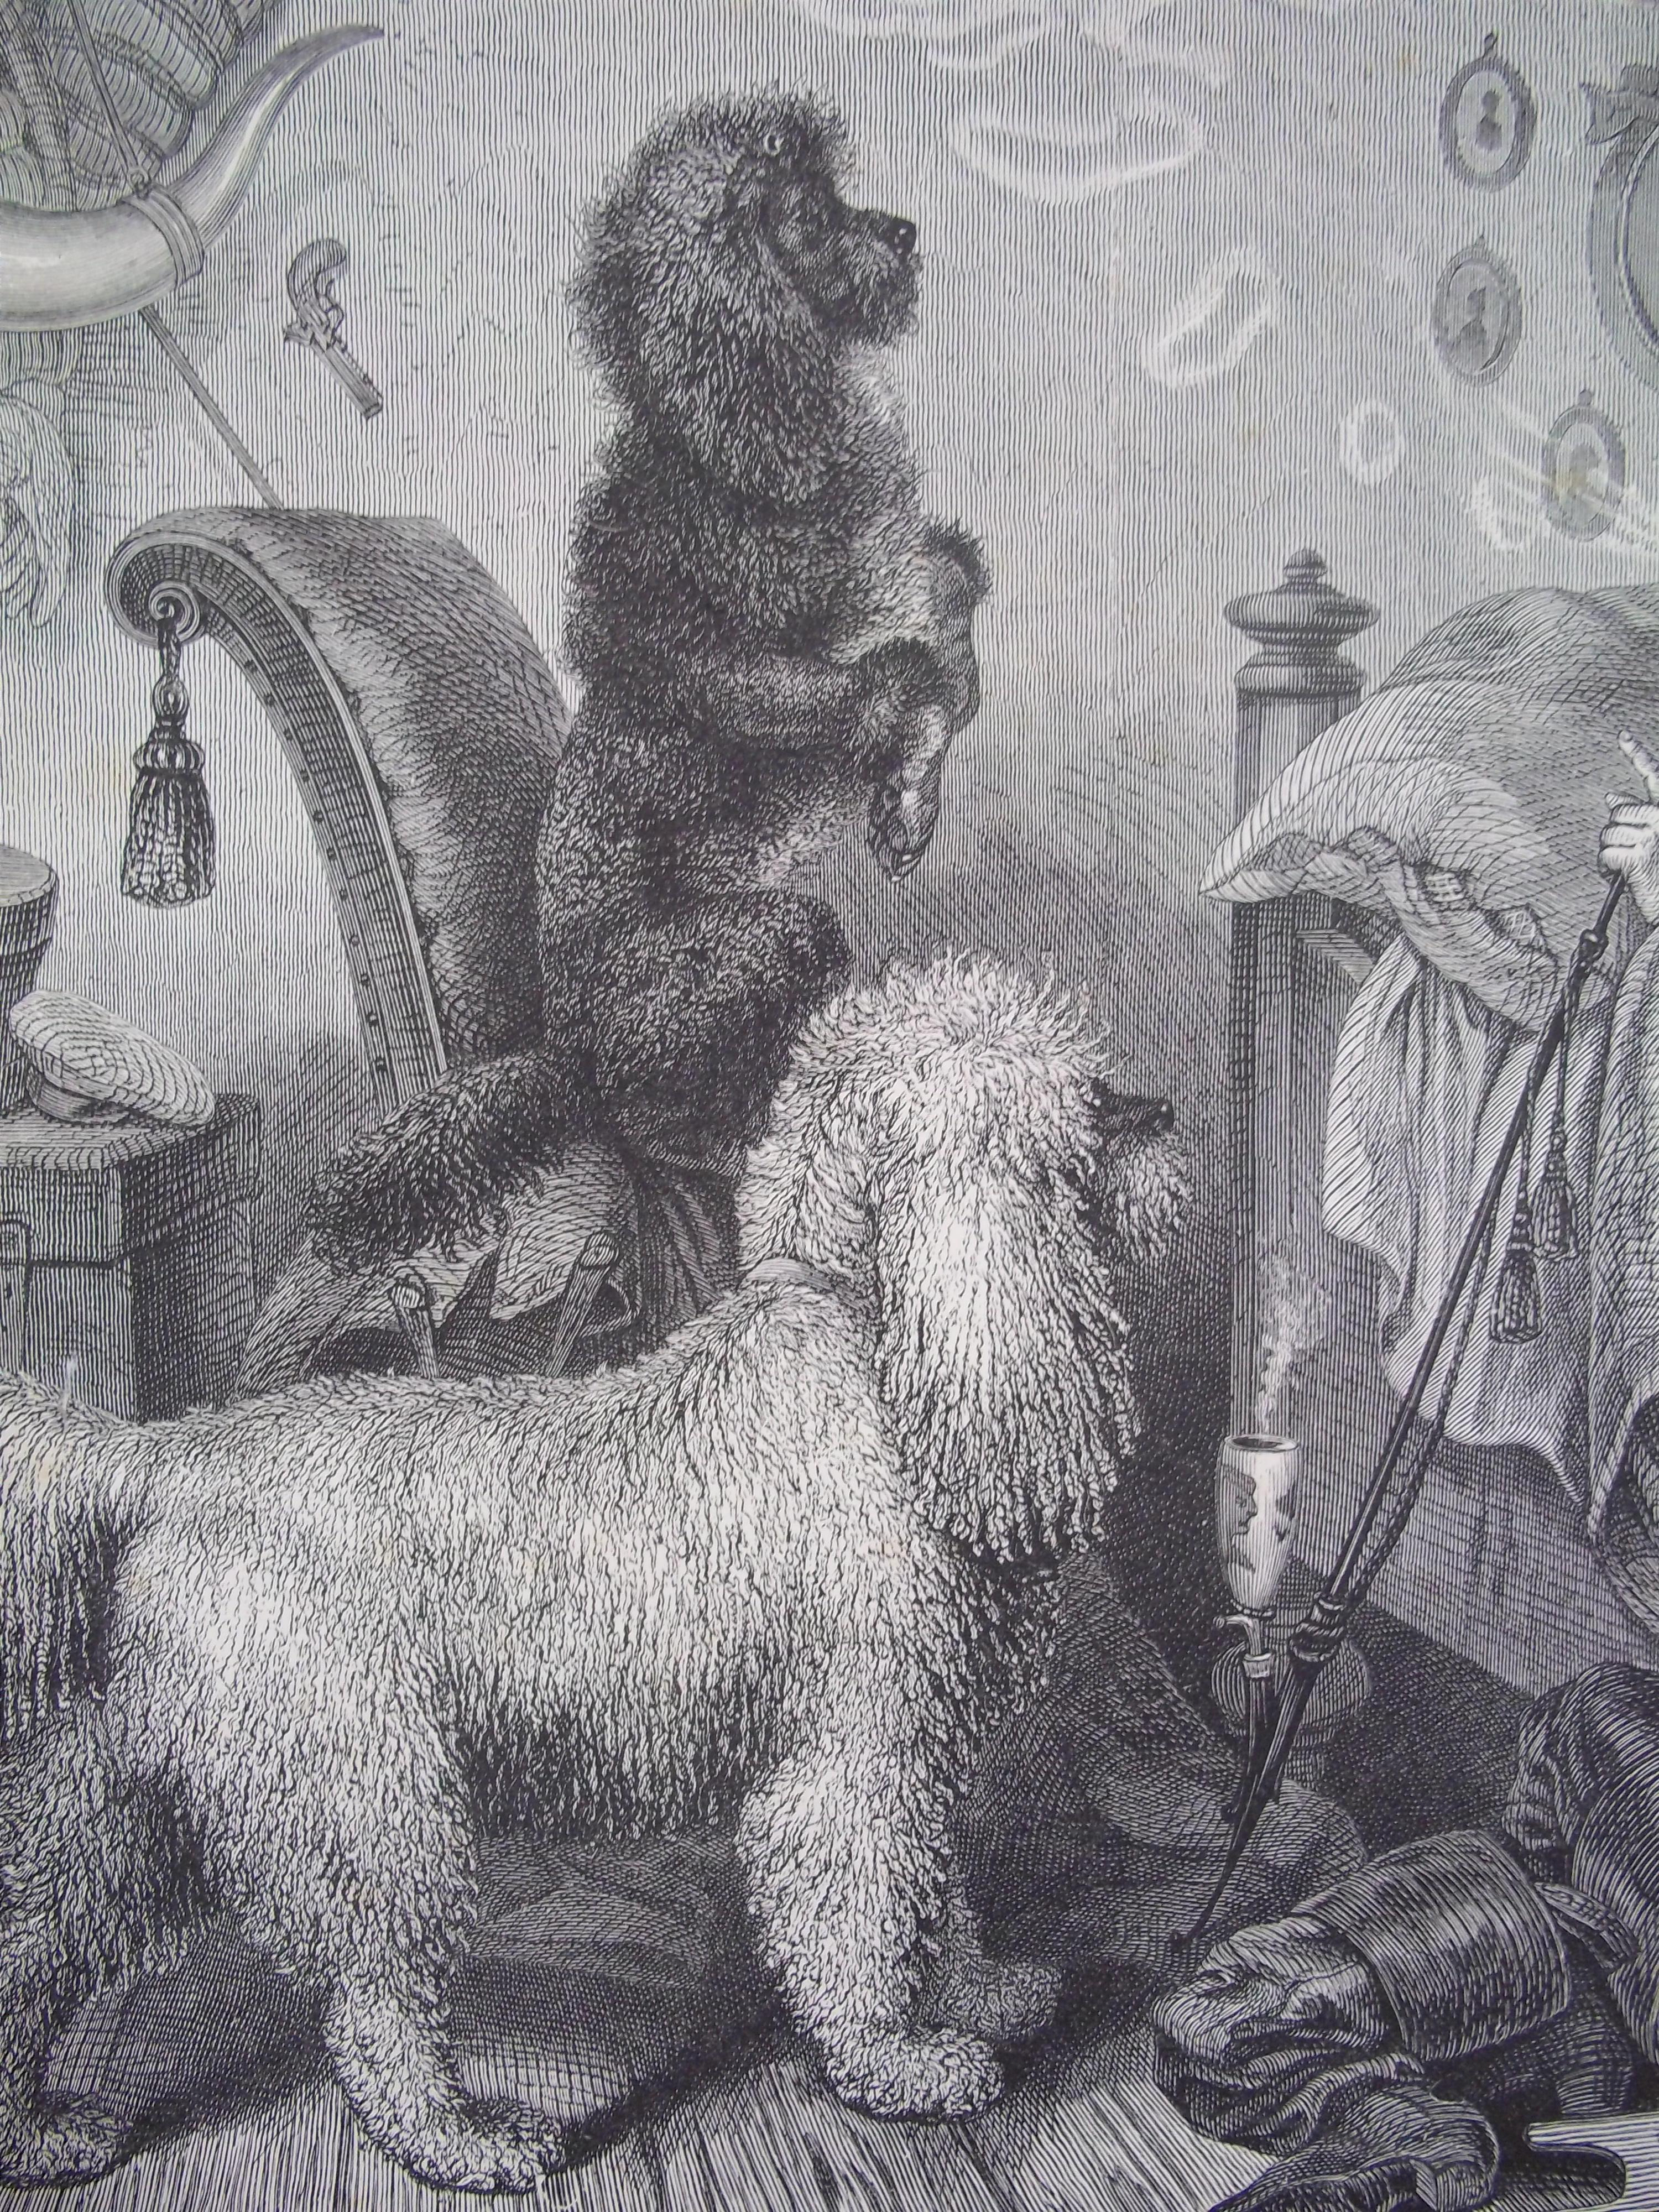 Picture from 'Illustrated Book of the Dog', by Vero Shaw (1890)